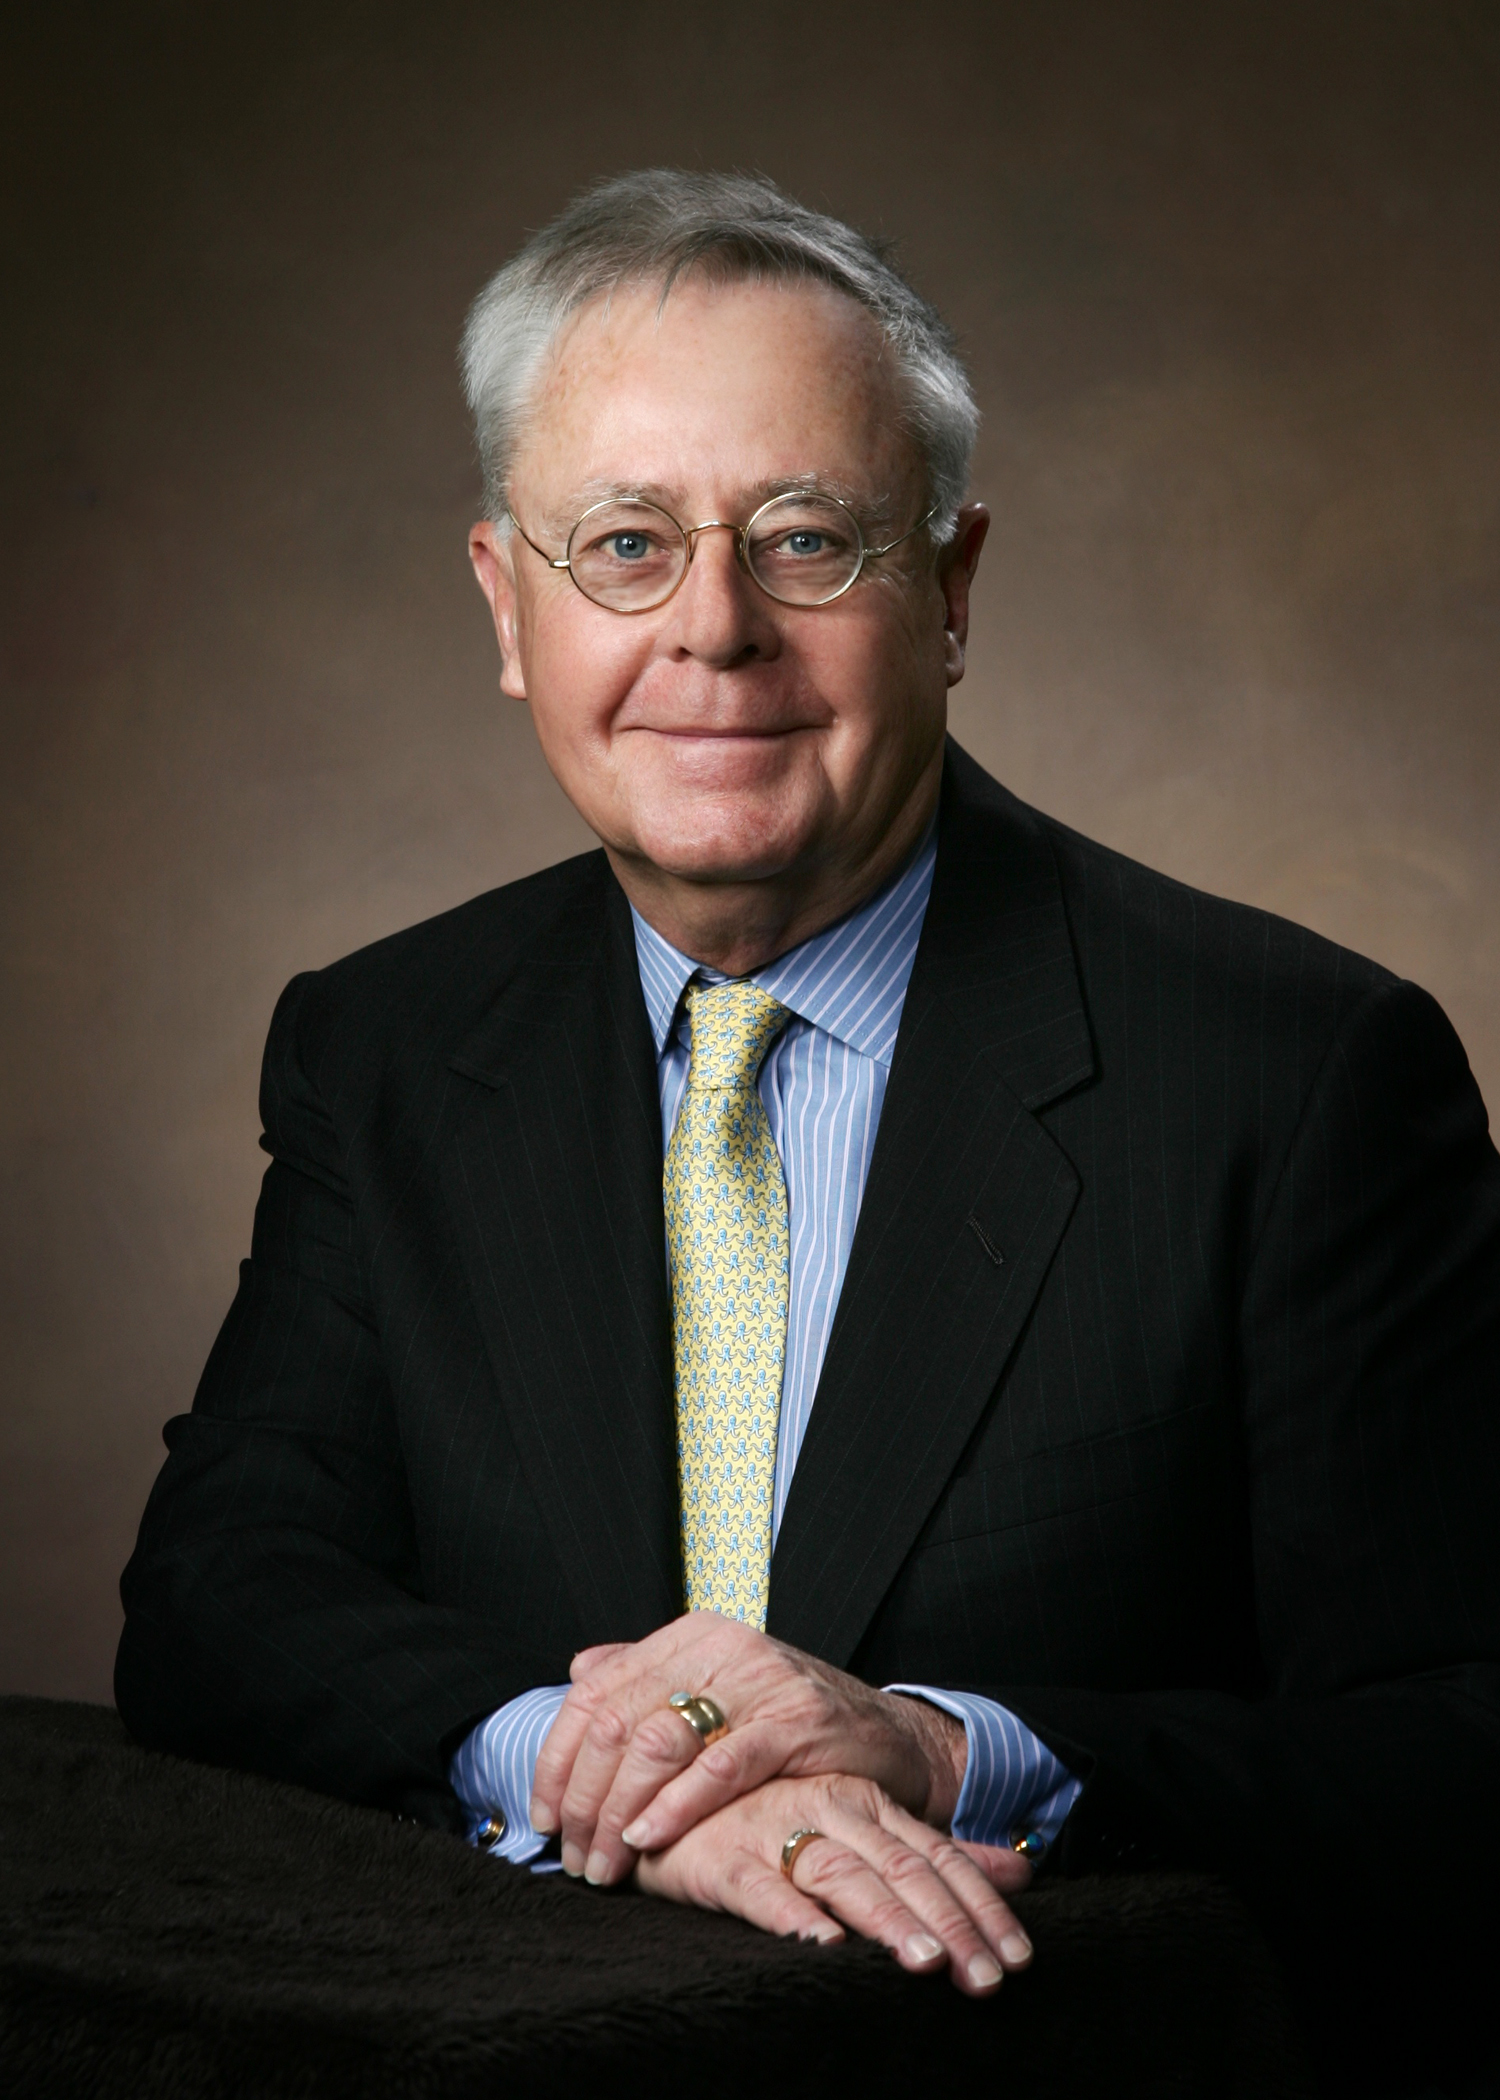 Paul A. Burkett, Esq., Chair